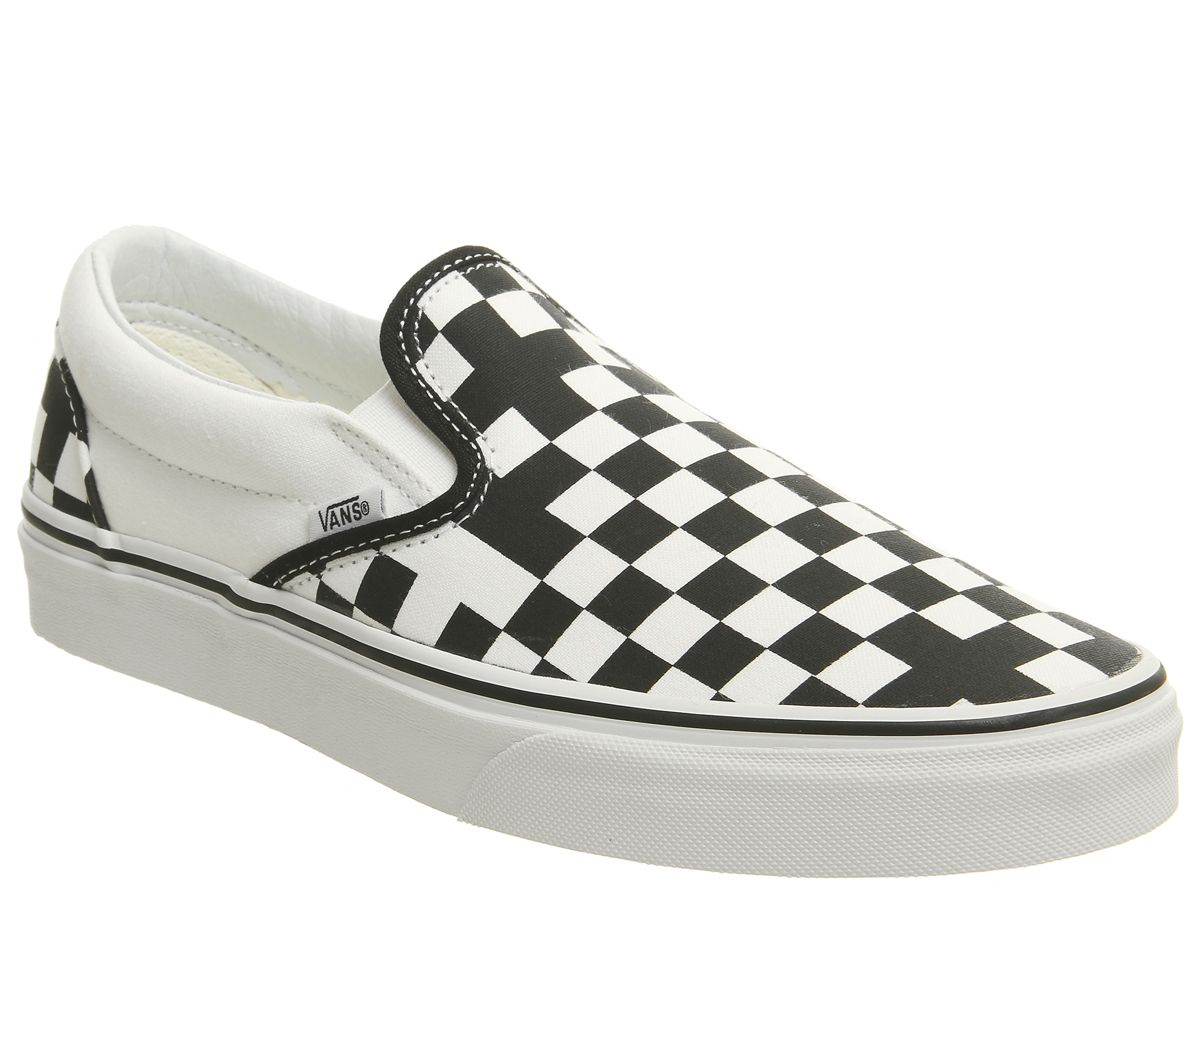 ff68a76cdb Vans Vans Classic Slip On Trainers Geometric Black True White ...